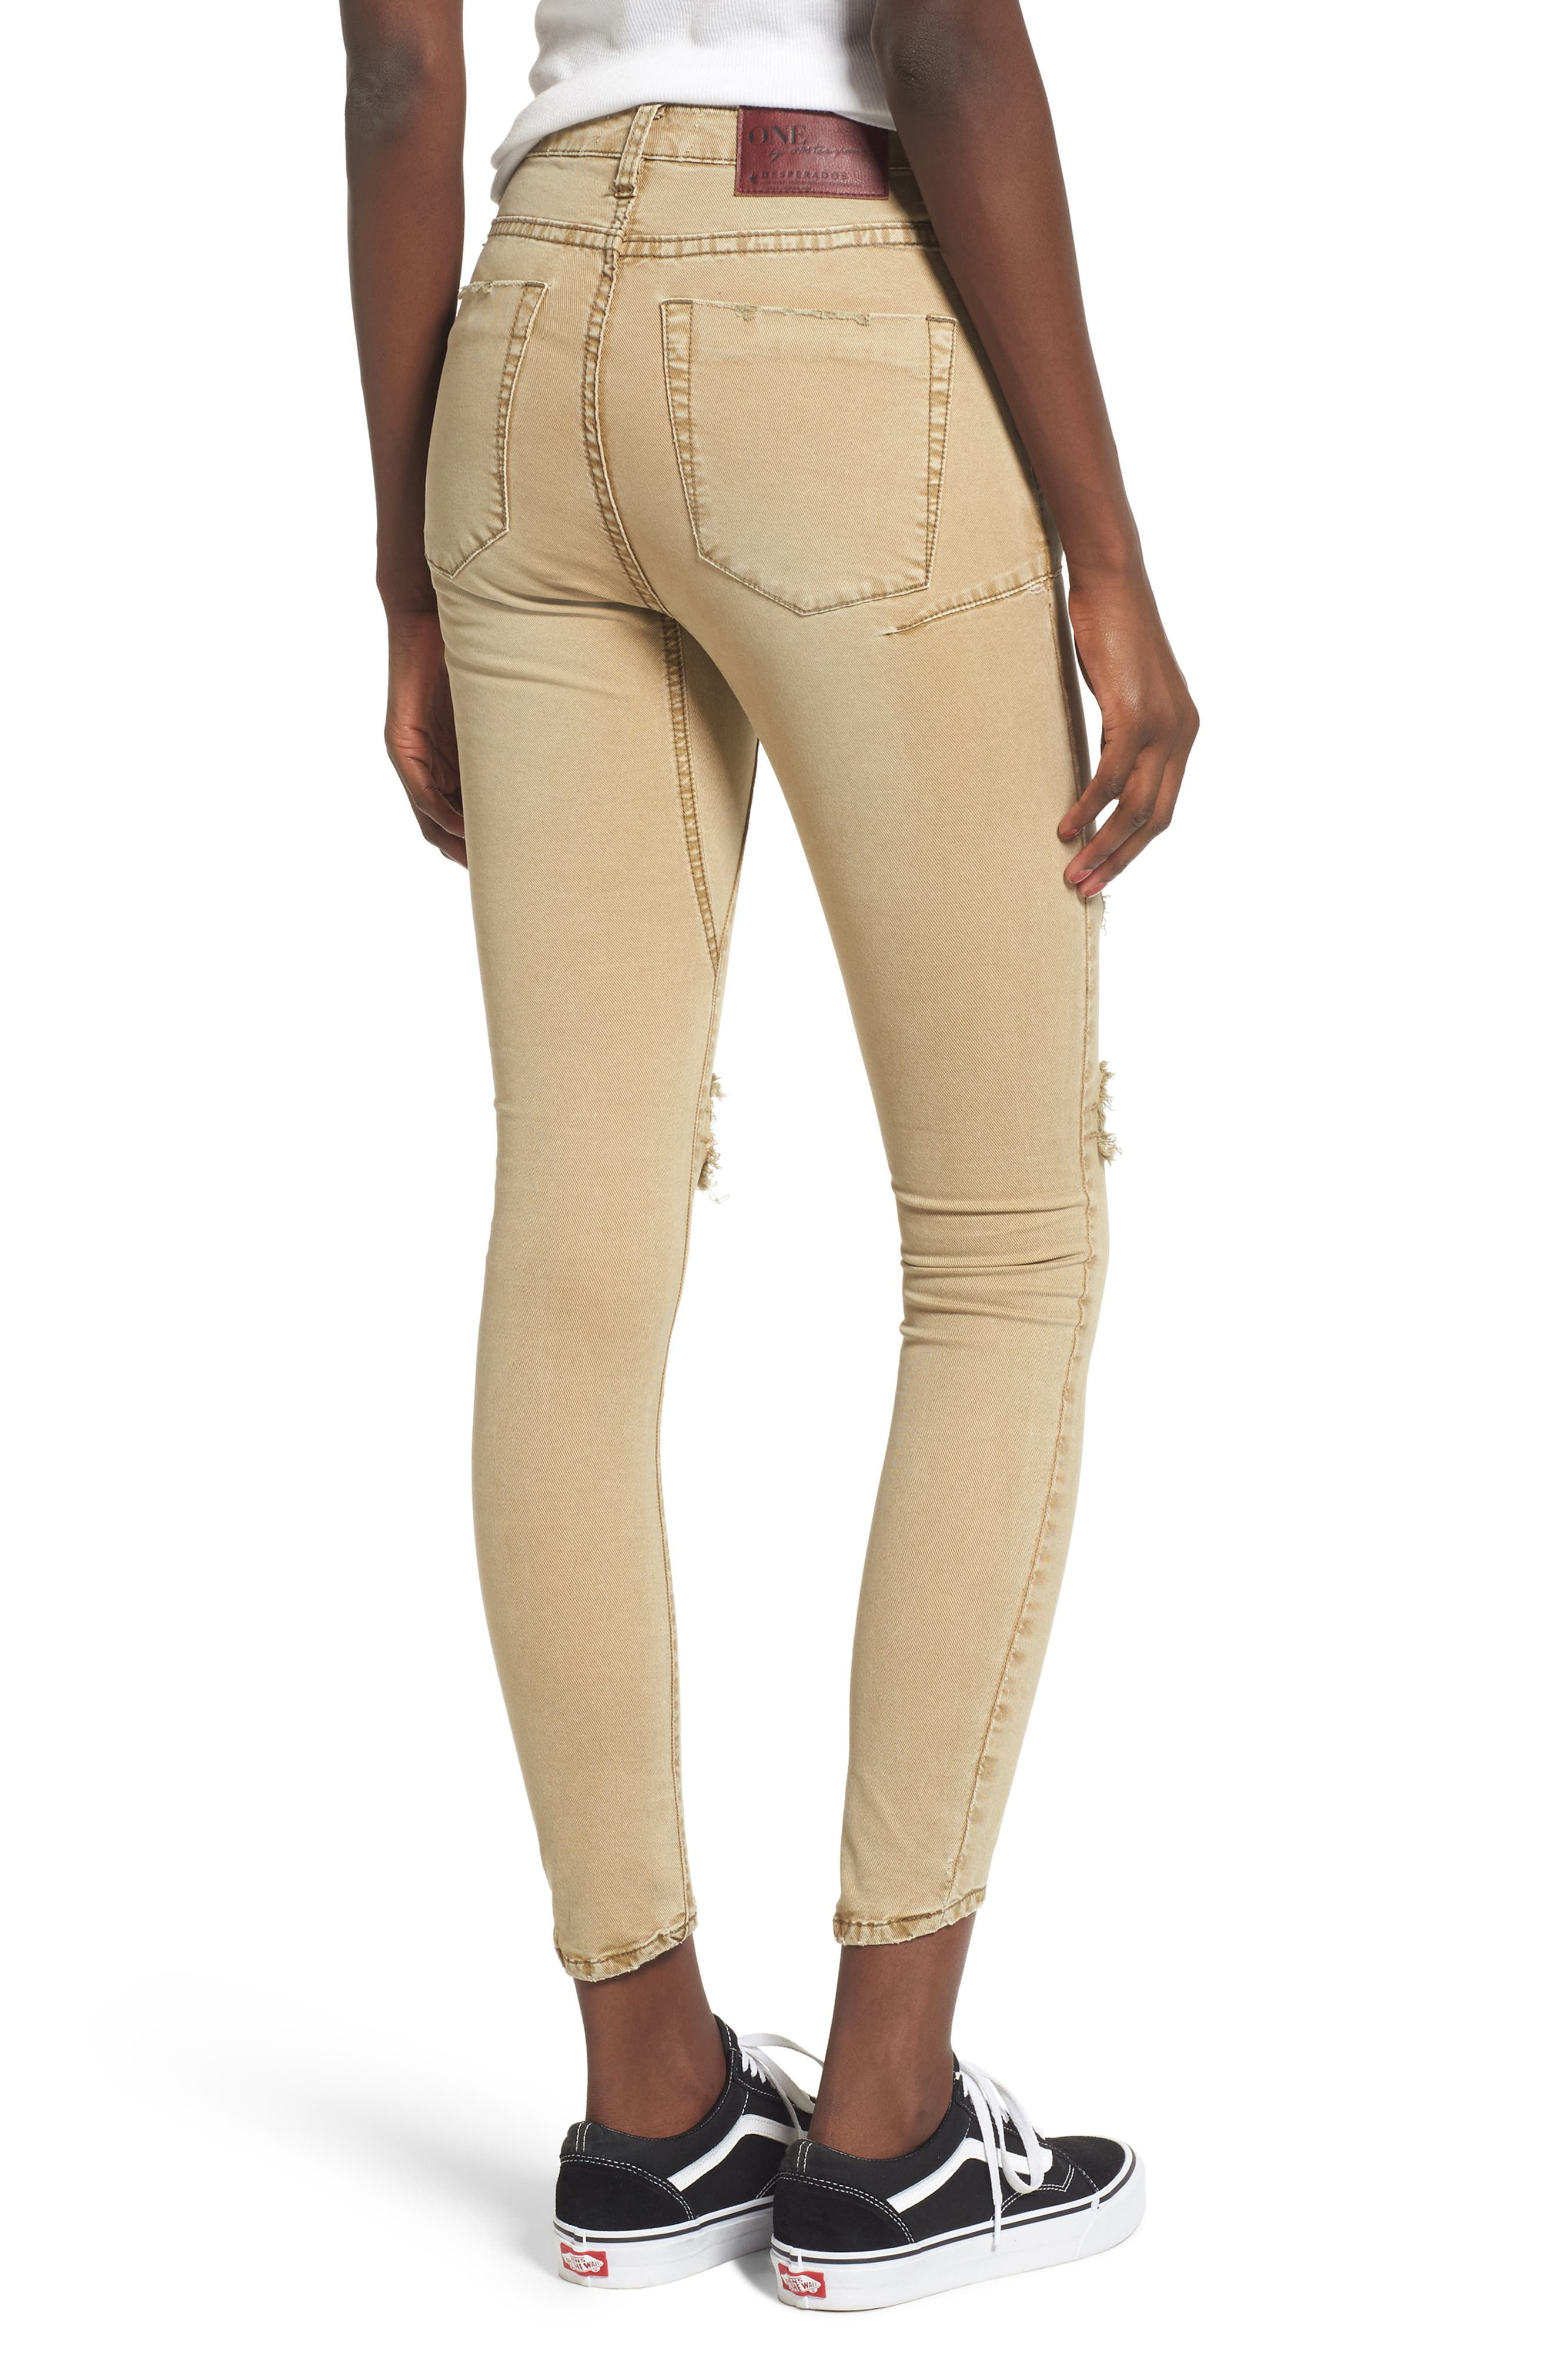 Freebirds Ripped Low Waist Skinny Jeans,                             Alternate thumbnail 2, color,                             250